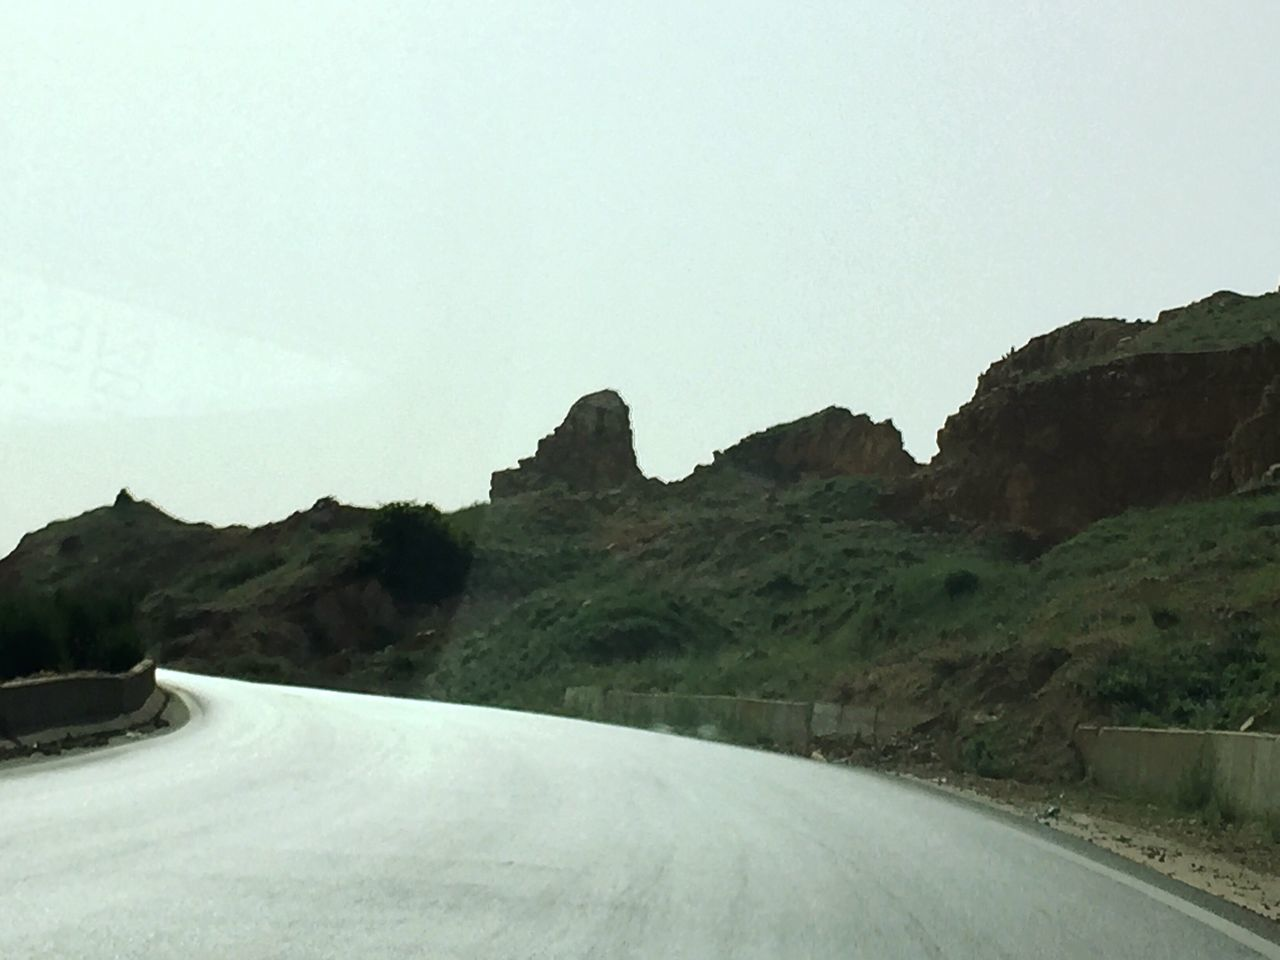 Mountain Mountain Road Road Rock Formation Scenics Landscape Nature Curves The Way Forward No People Winding Road Mountain Range